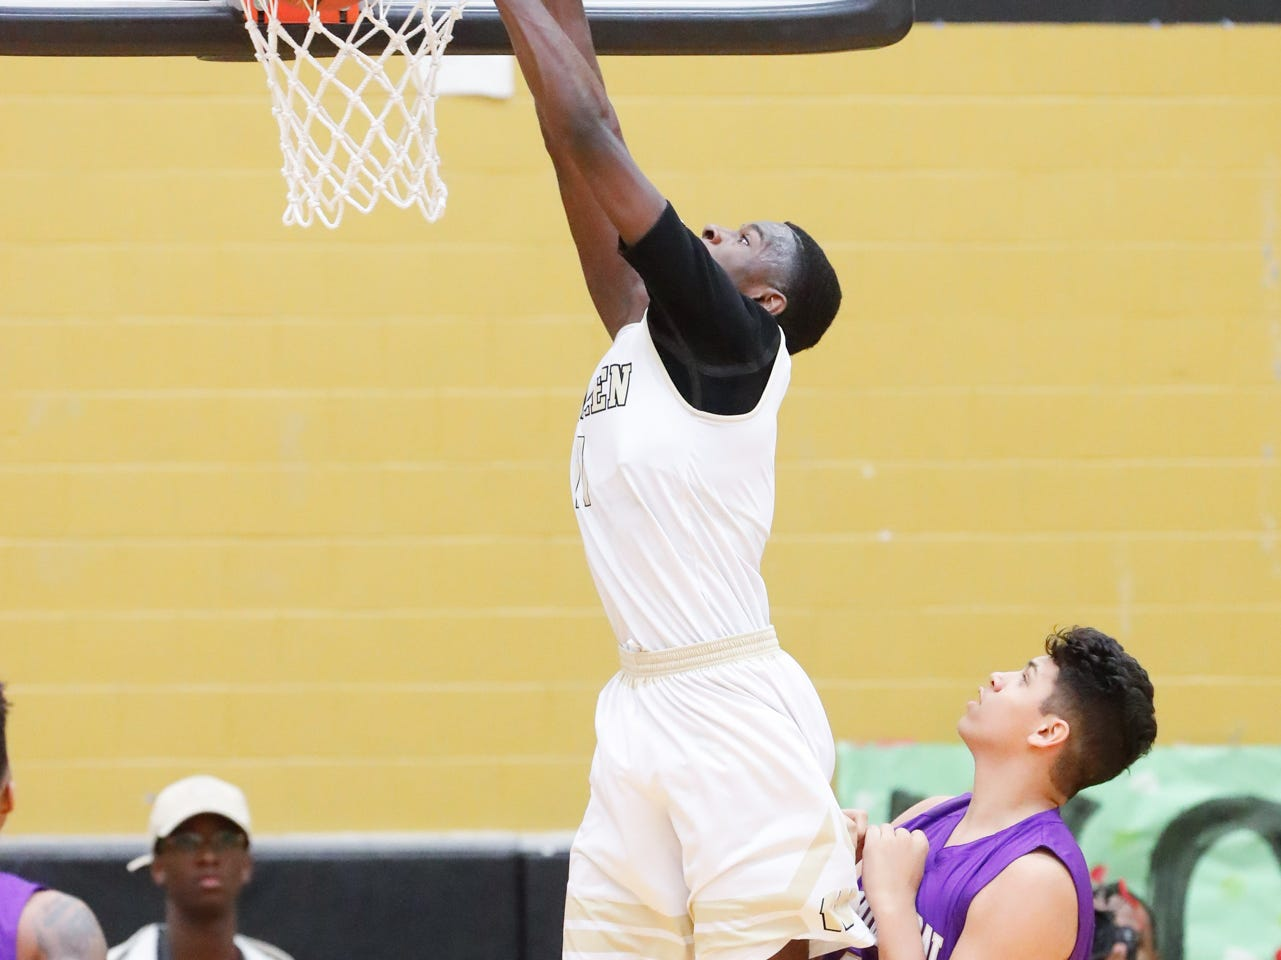 Warren Central High School's forward Jesse Bingham (11) hits a big dunk over Cathedral High School's Isaac Farah (34), during a varsity boys basketball game between Cathedral High School and Warren Central High School at Warren Central on Friday, Dec. 7, 2018.